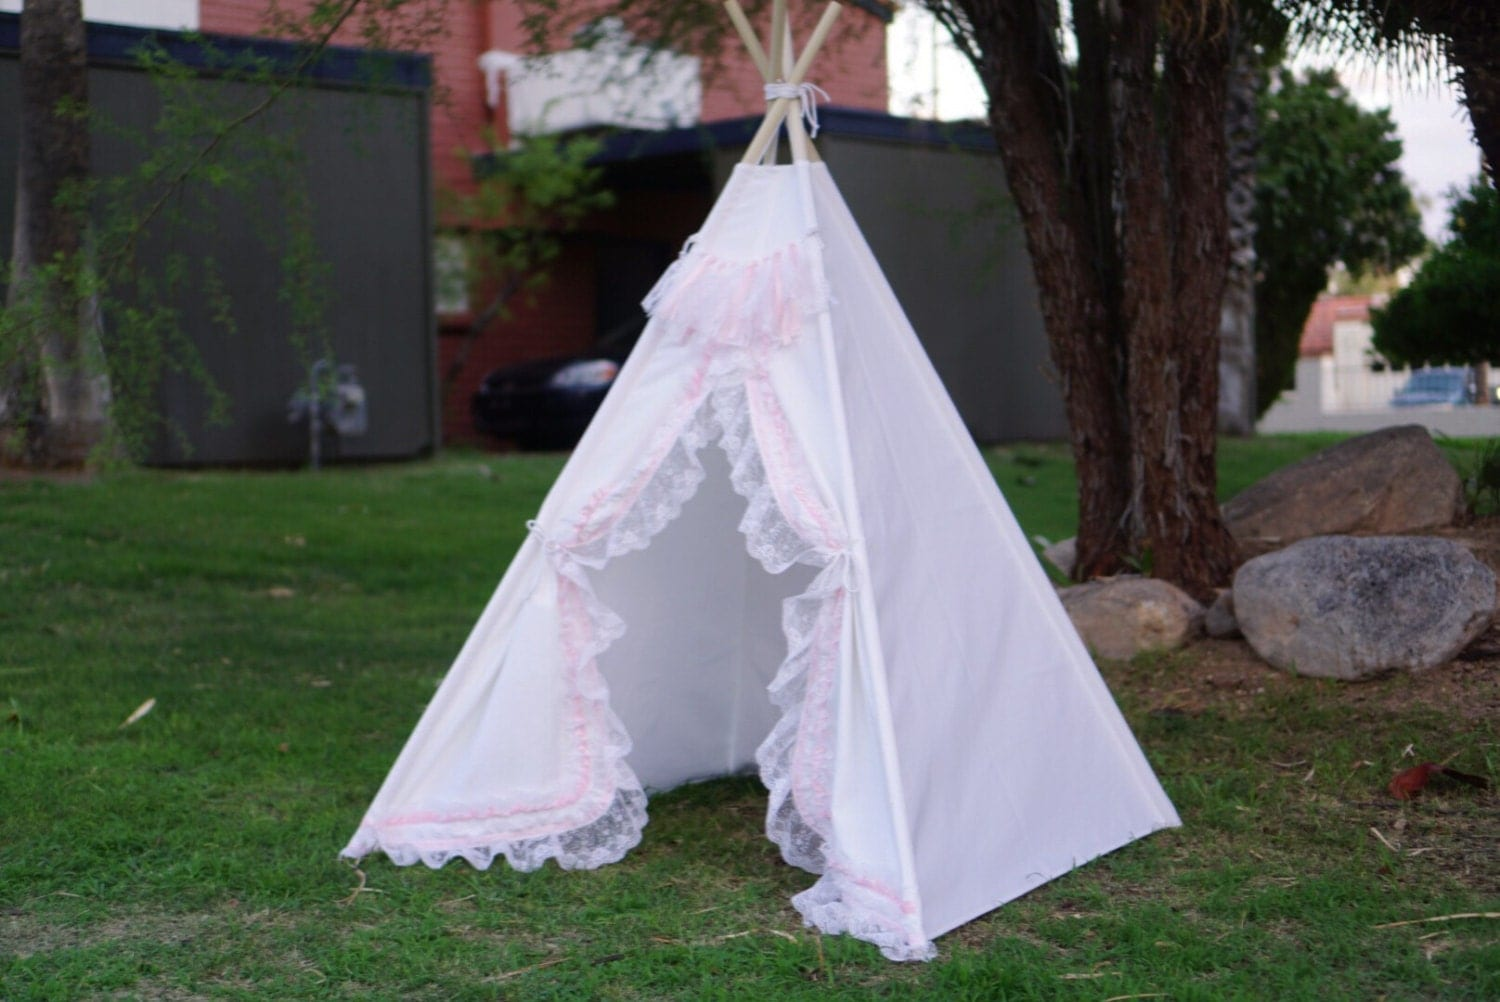 White shabby-chic lace teepee tent/ white canvas and pink lace kids Play tent/ girls canvas u0026 lace Tipi Wigwam or Playhouse ruffle photo pro & White shabby-chic lace teepee tent/ white canvas and pink lace ...